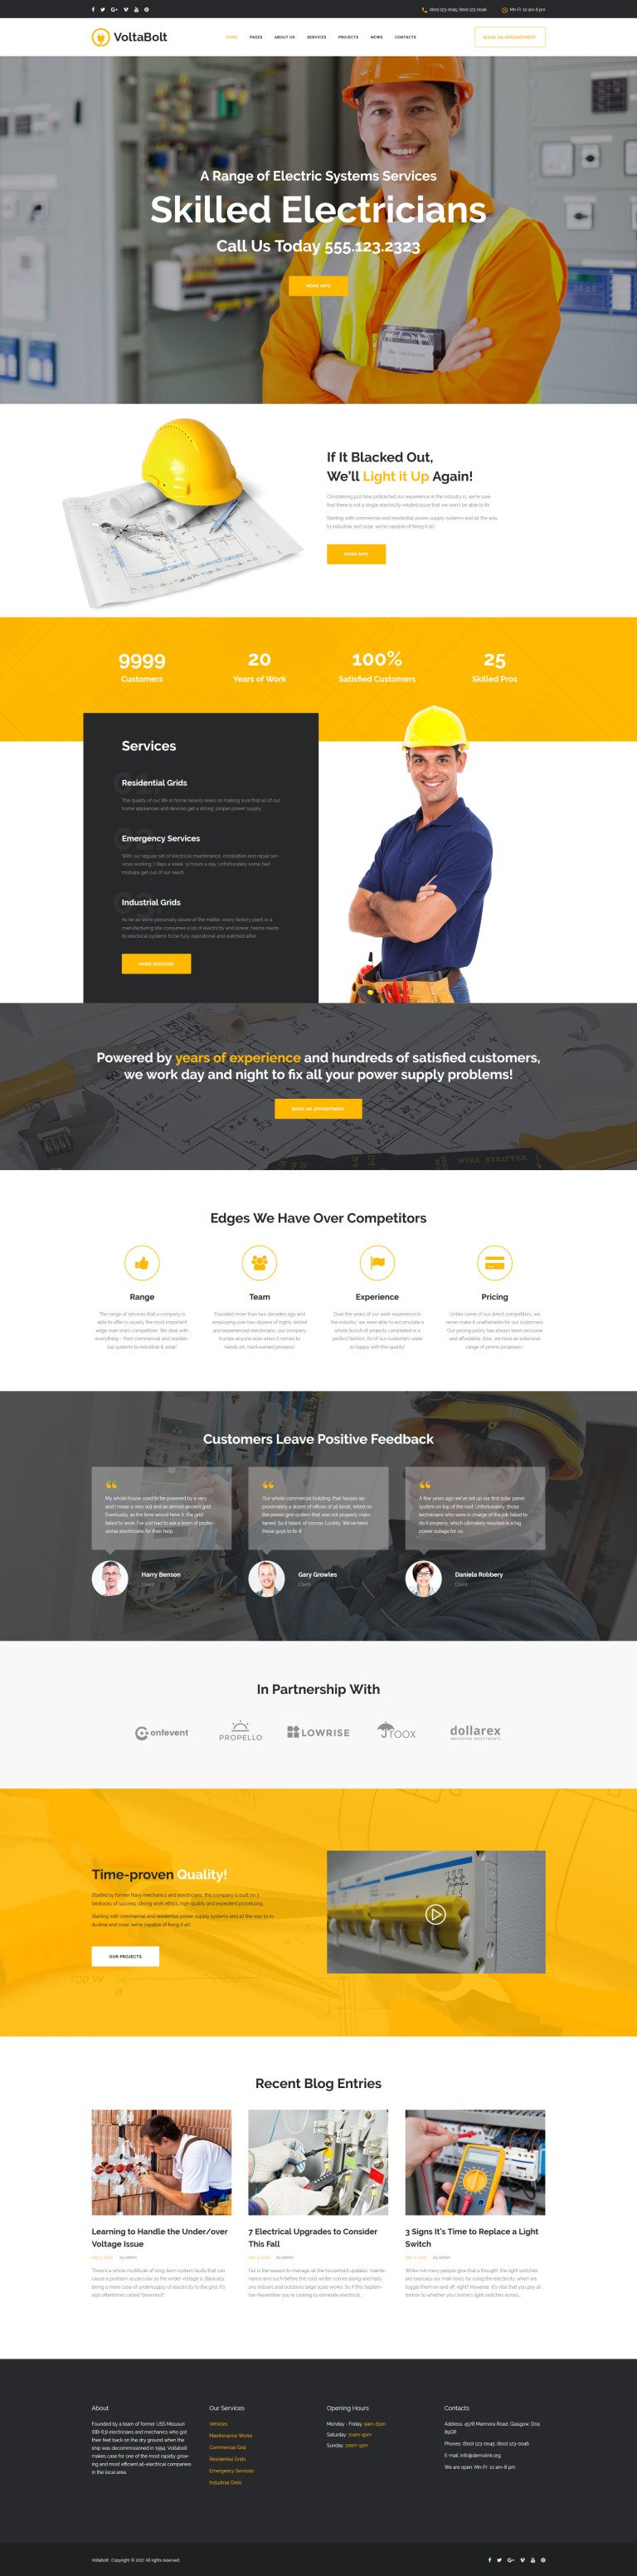 VoltaBolt - Electrician Services Responsive WordPress Theme WordPress Theme New Screenshots BIG